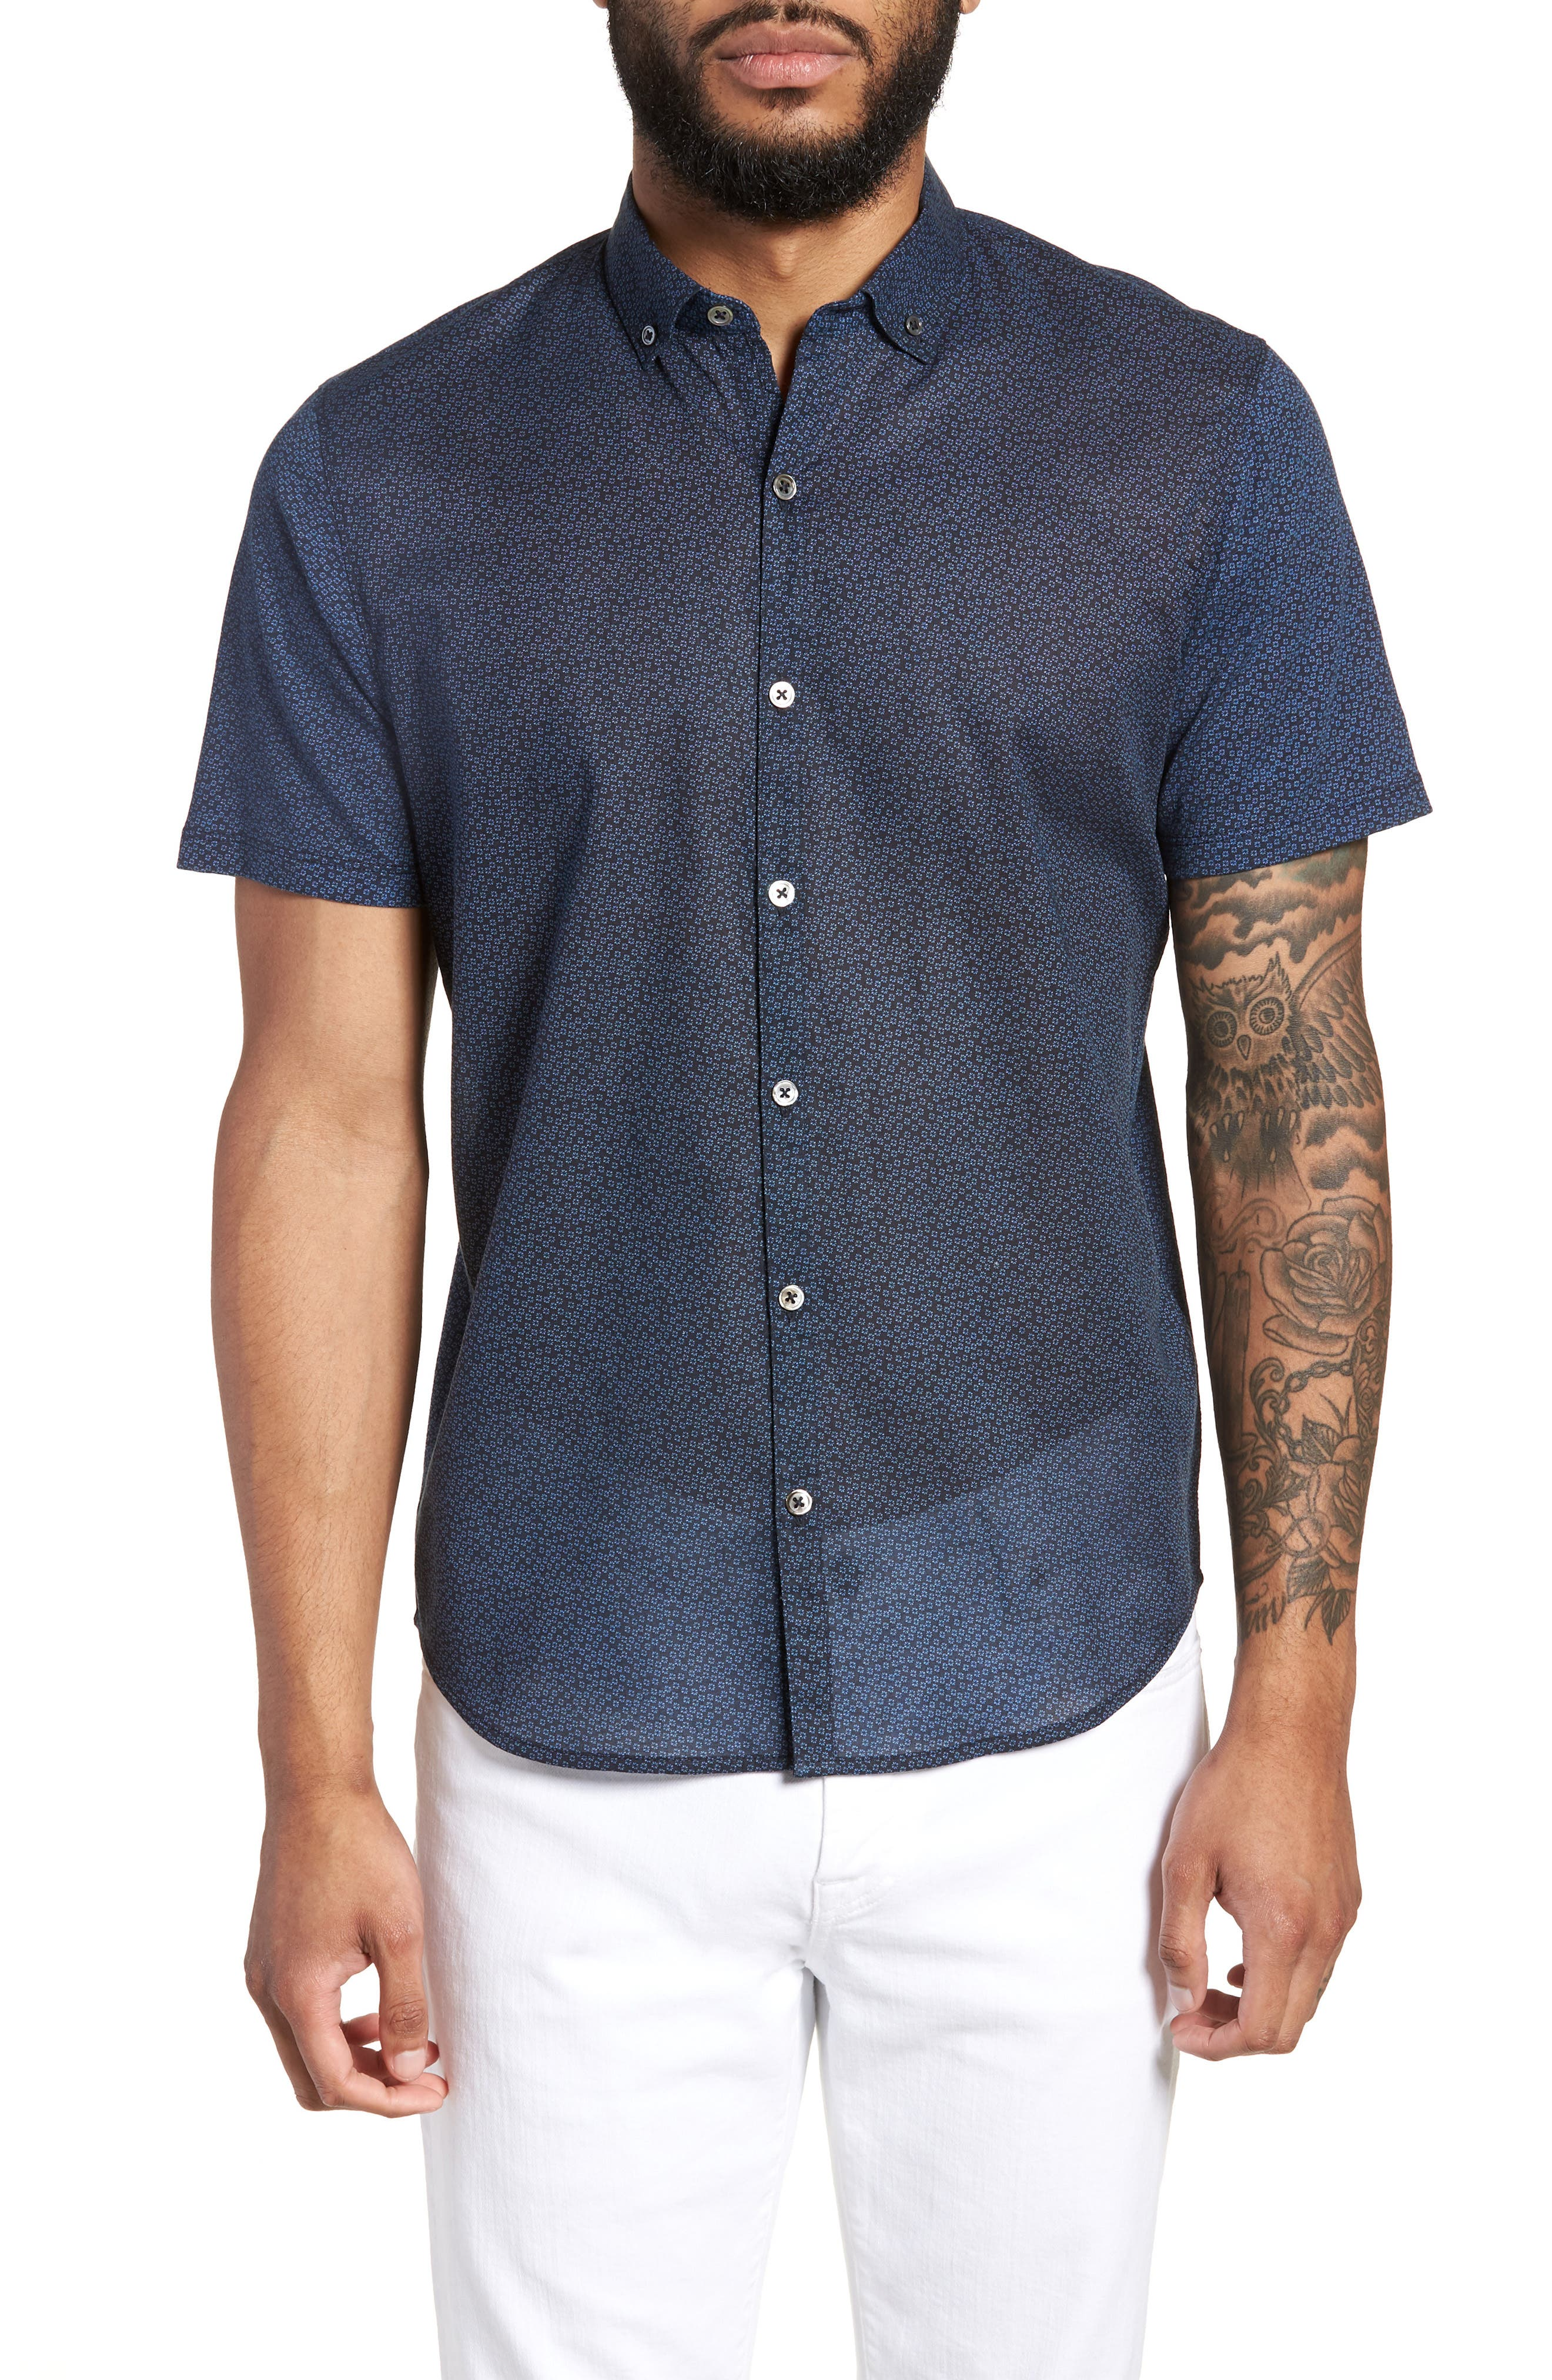 Alternate Image 1 Selected - Zachary Prell Clyde Slim Fit Sport Shirt